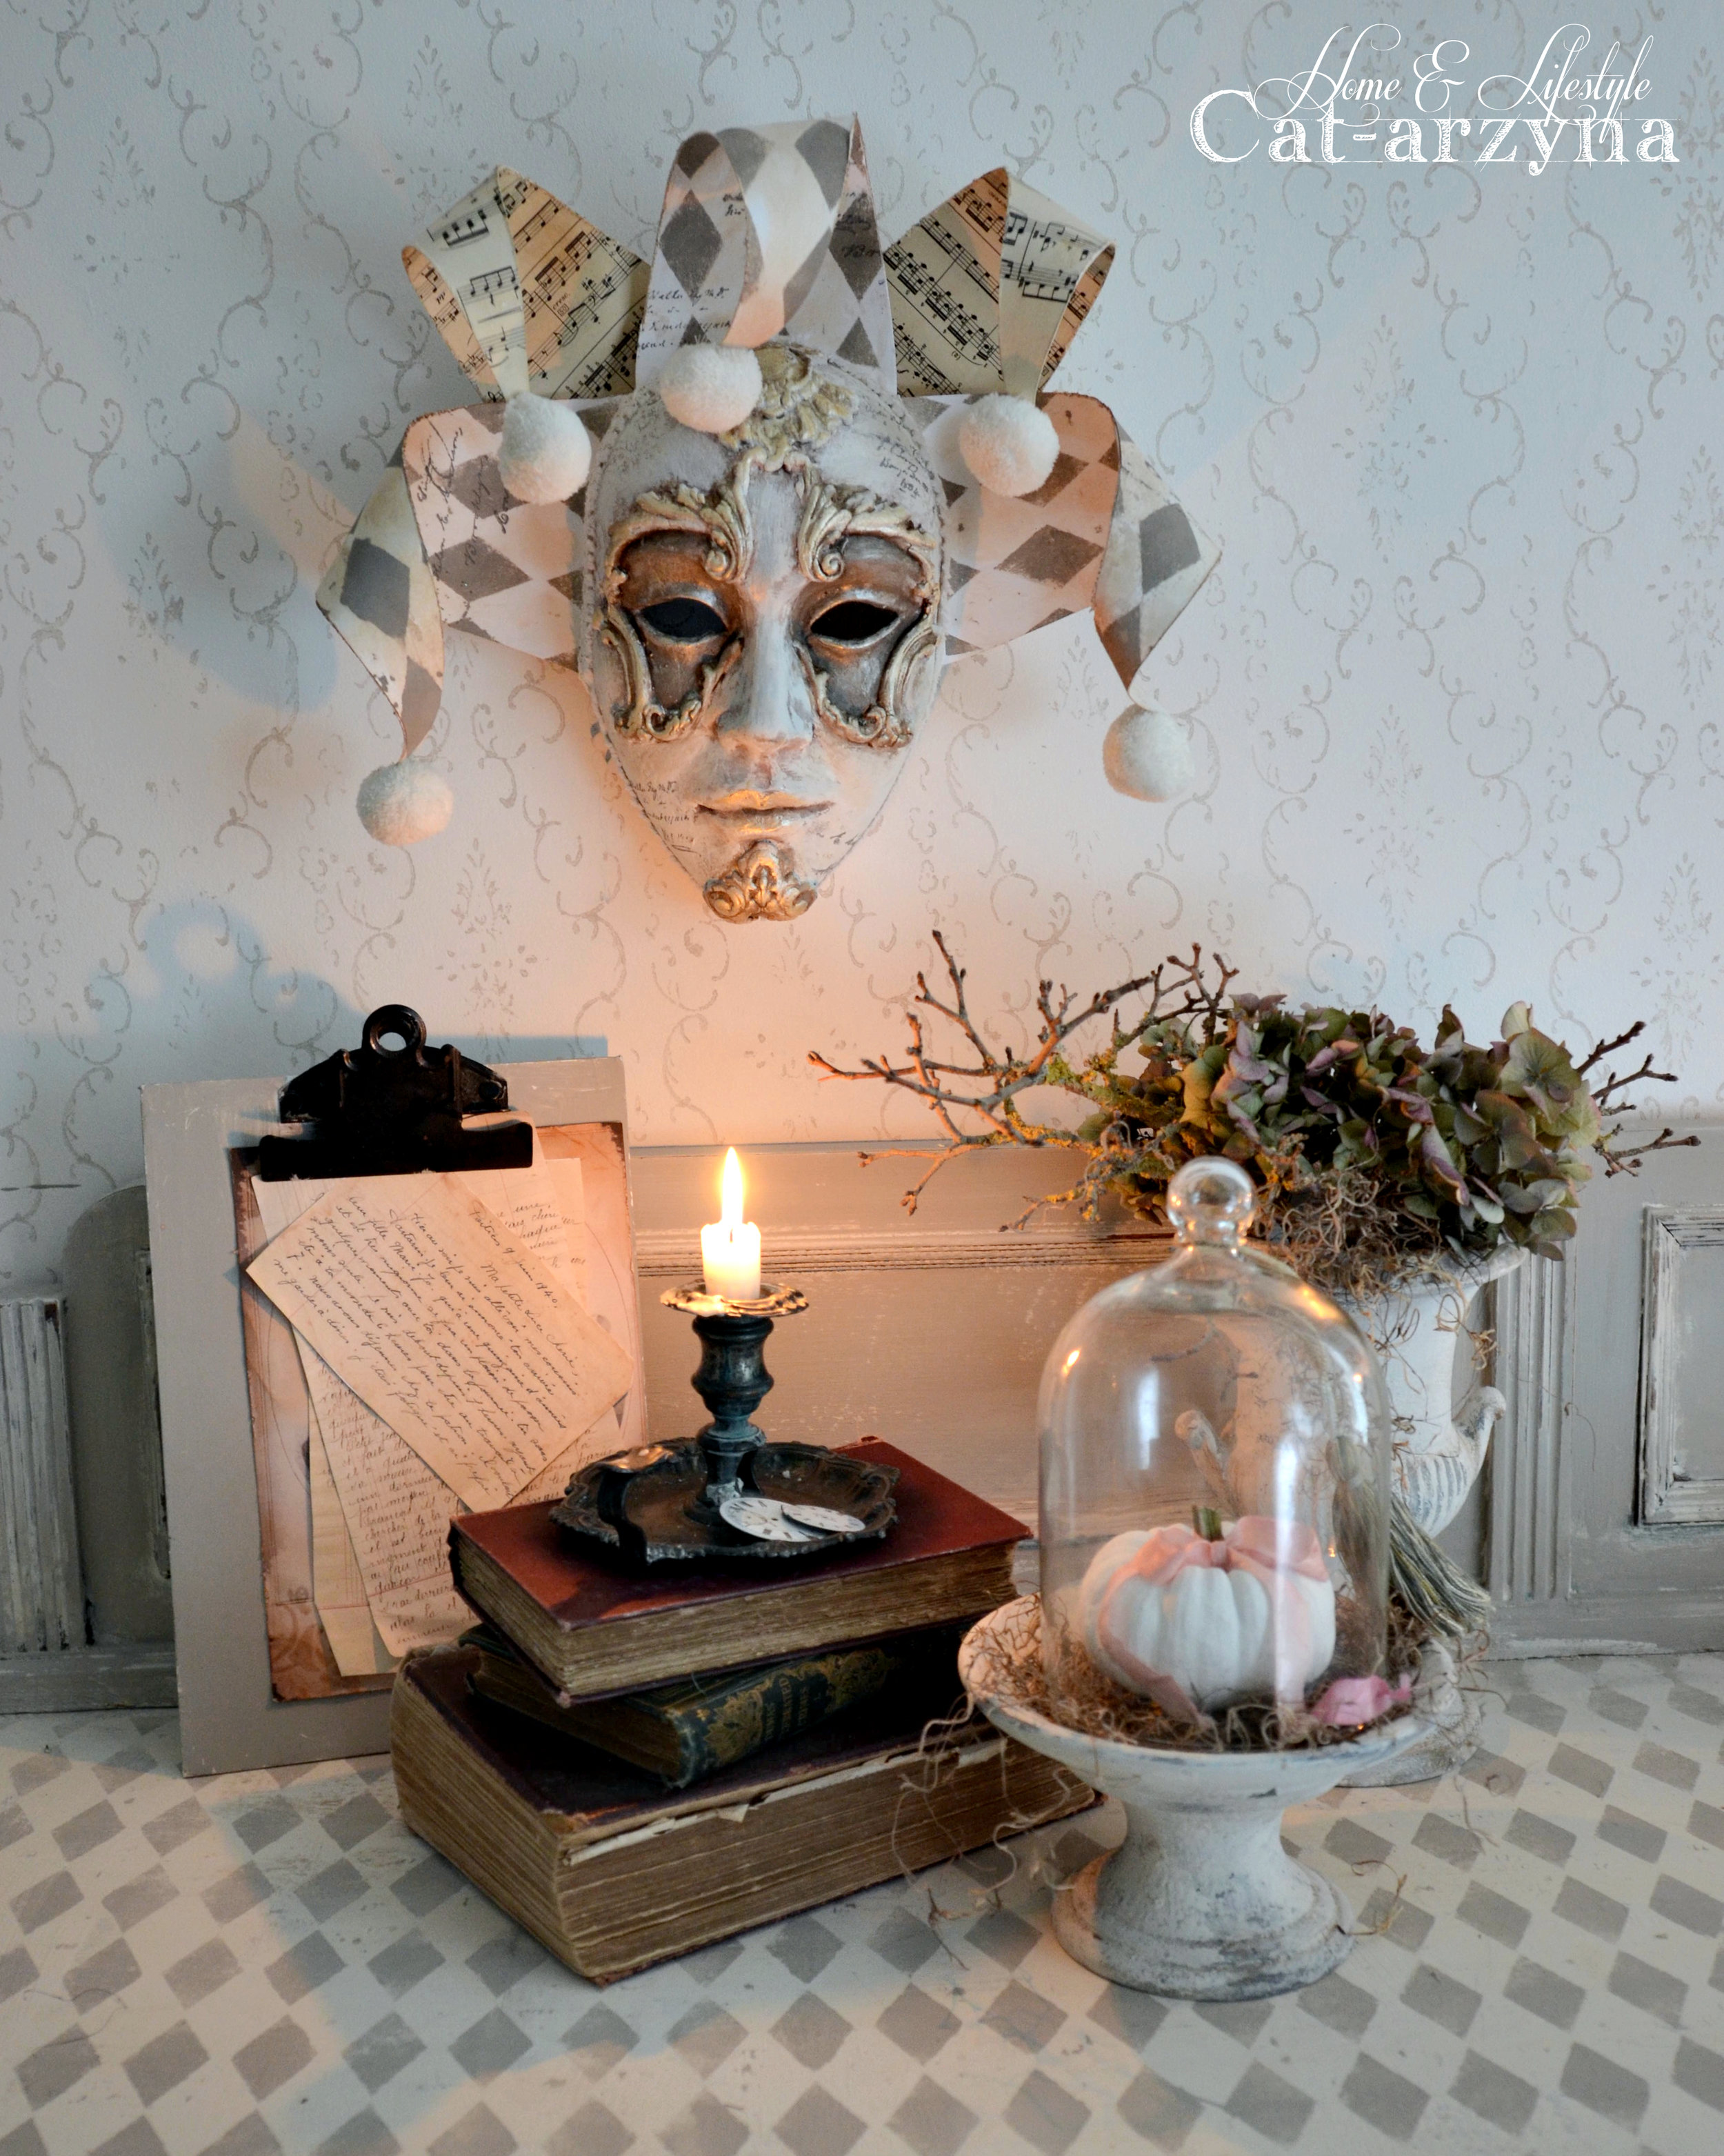 This fall season, we are gearing up for All Hallows' Eve at the end of the month and why not craft your own decorations to fit your style? Cat-arzyna created decorative masks that are sure to add whimsy and charm to your home for Halloween, Carnival or maybe all year round.Here's what she did to create these beautiful projects...